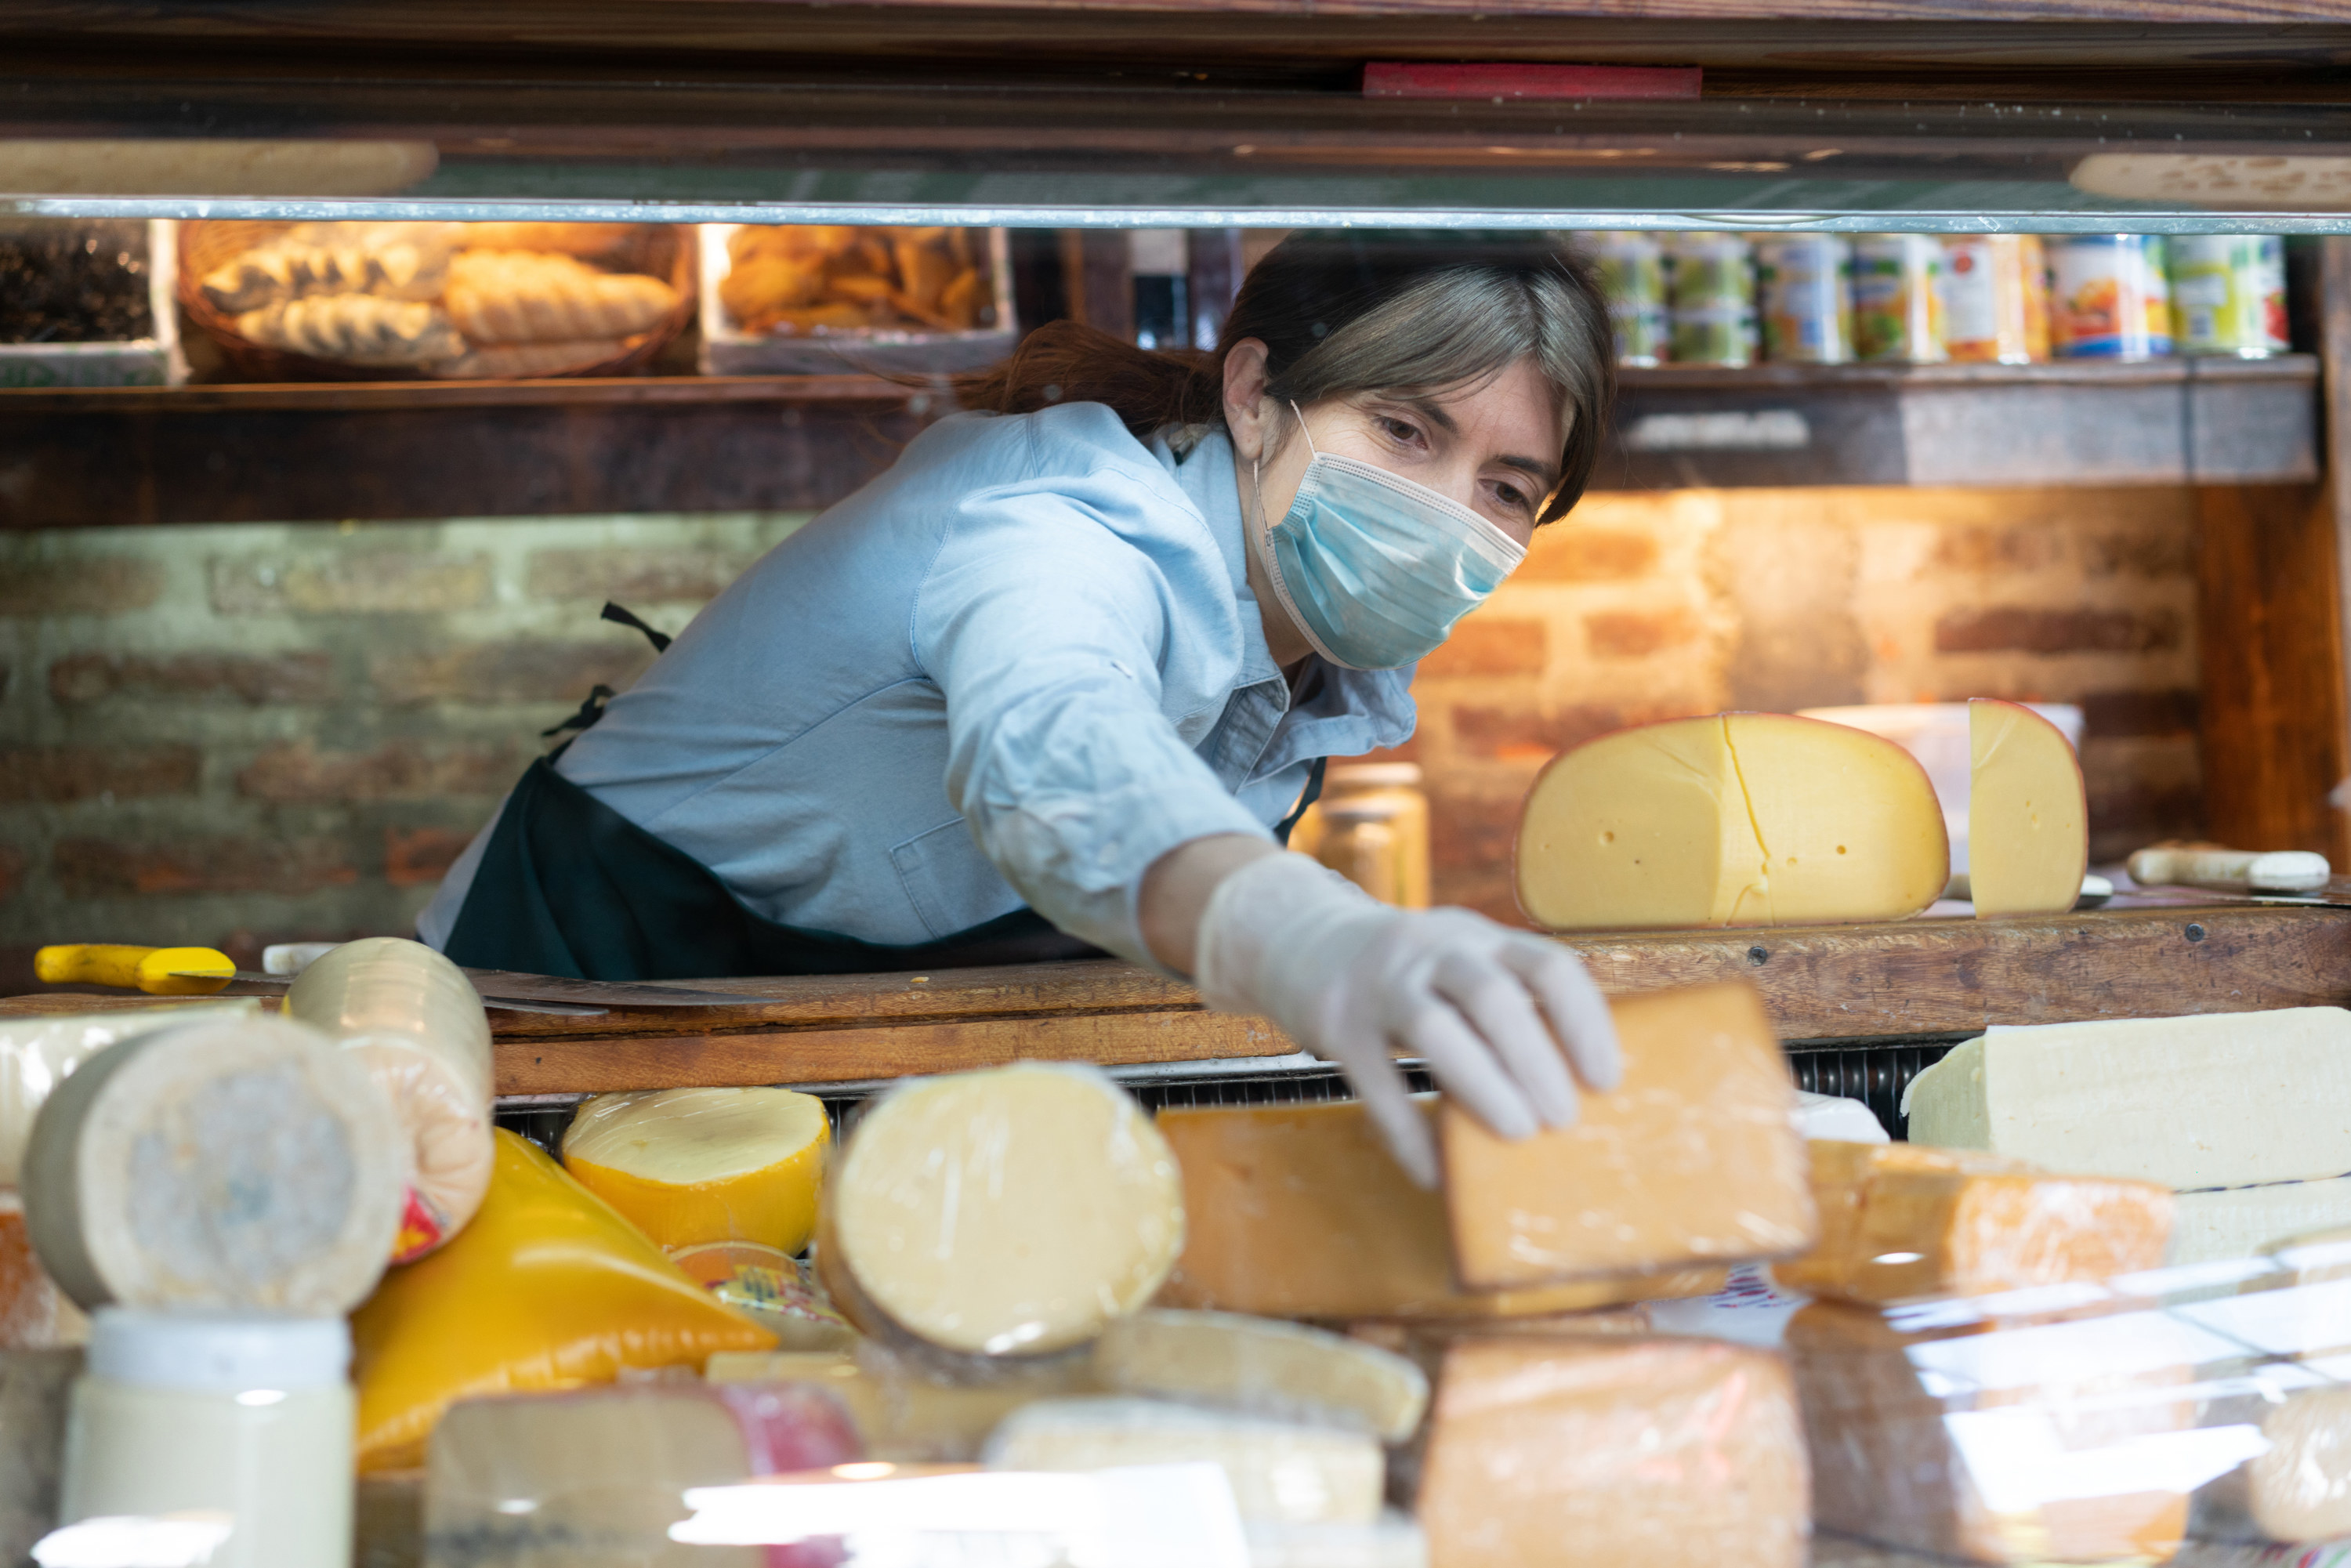 Deli worker rearranging cheese